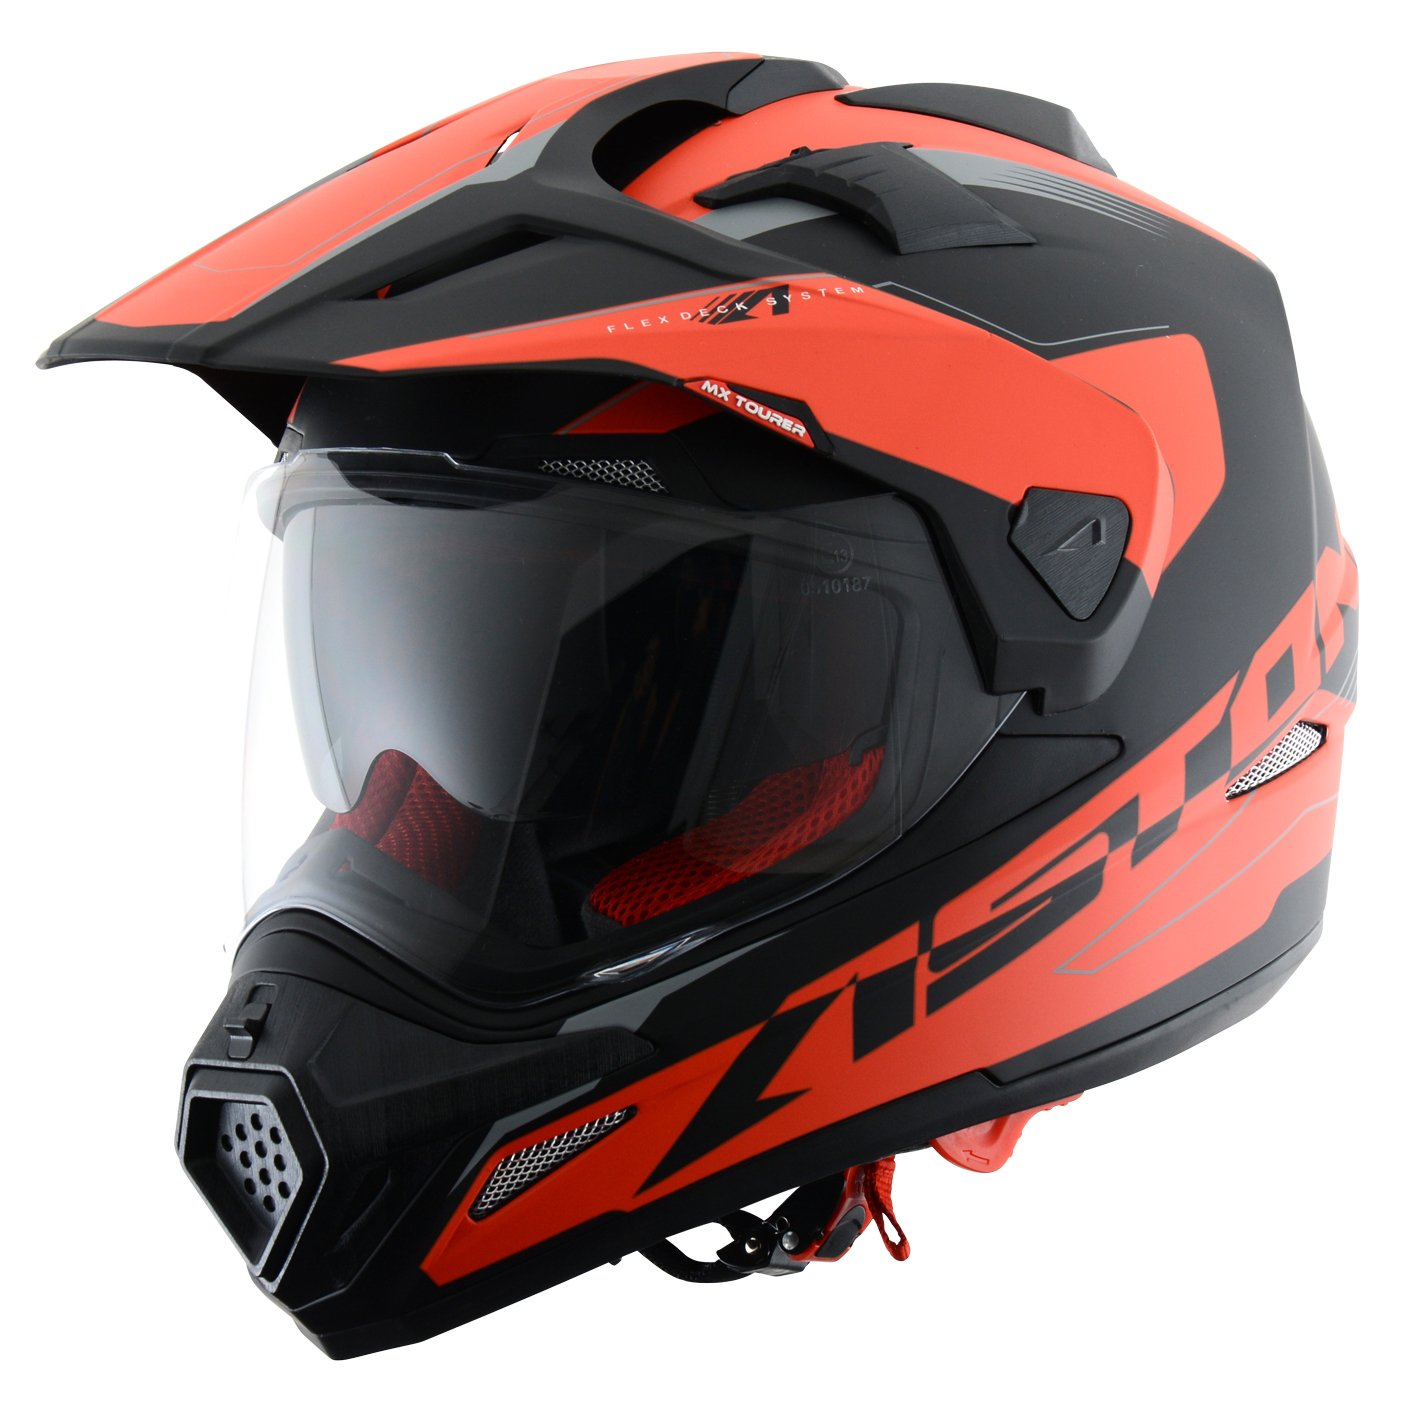 Astone Helmets Tourer Adventure, color Rojo, talla XS: Amazon.es: Coche y moto